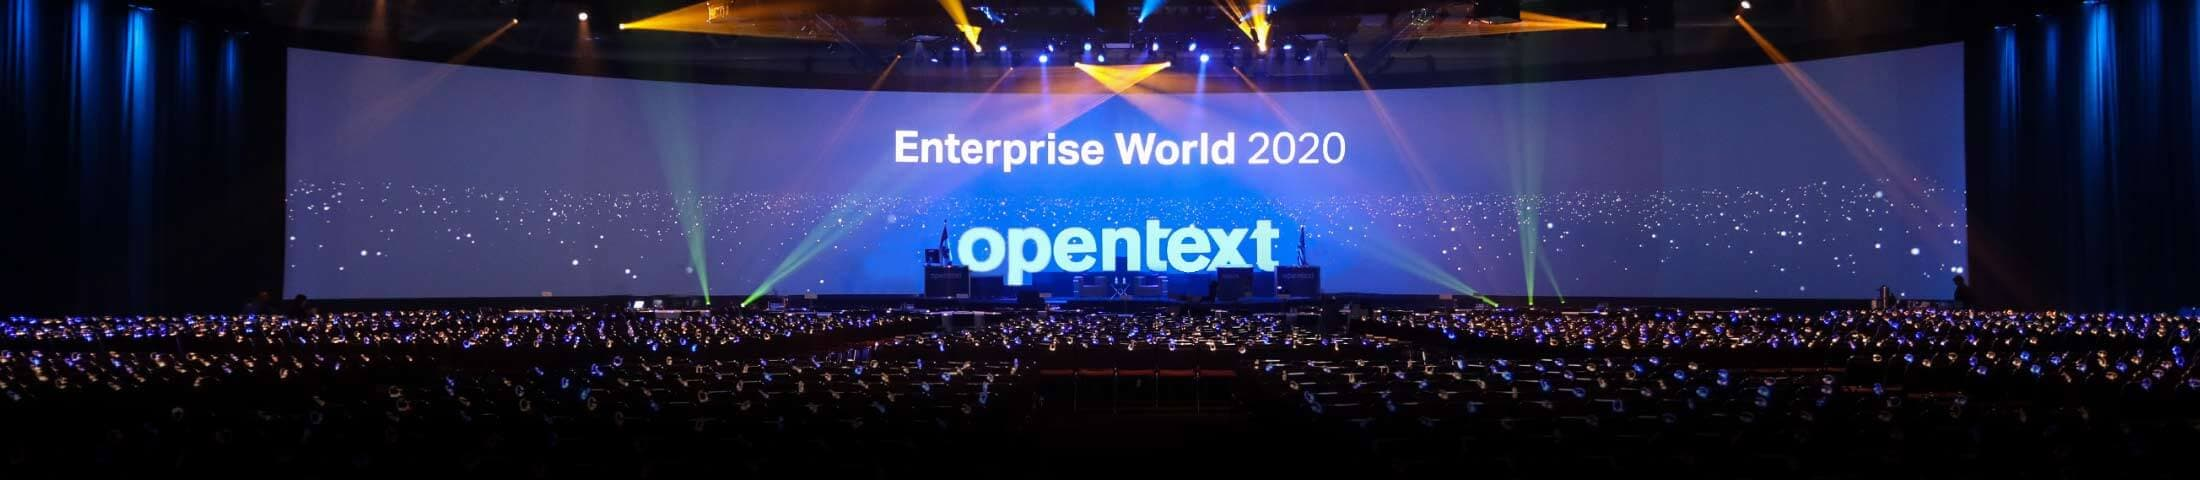 Enterprise World 2020